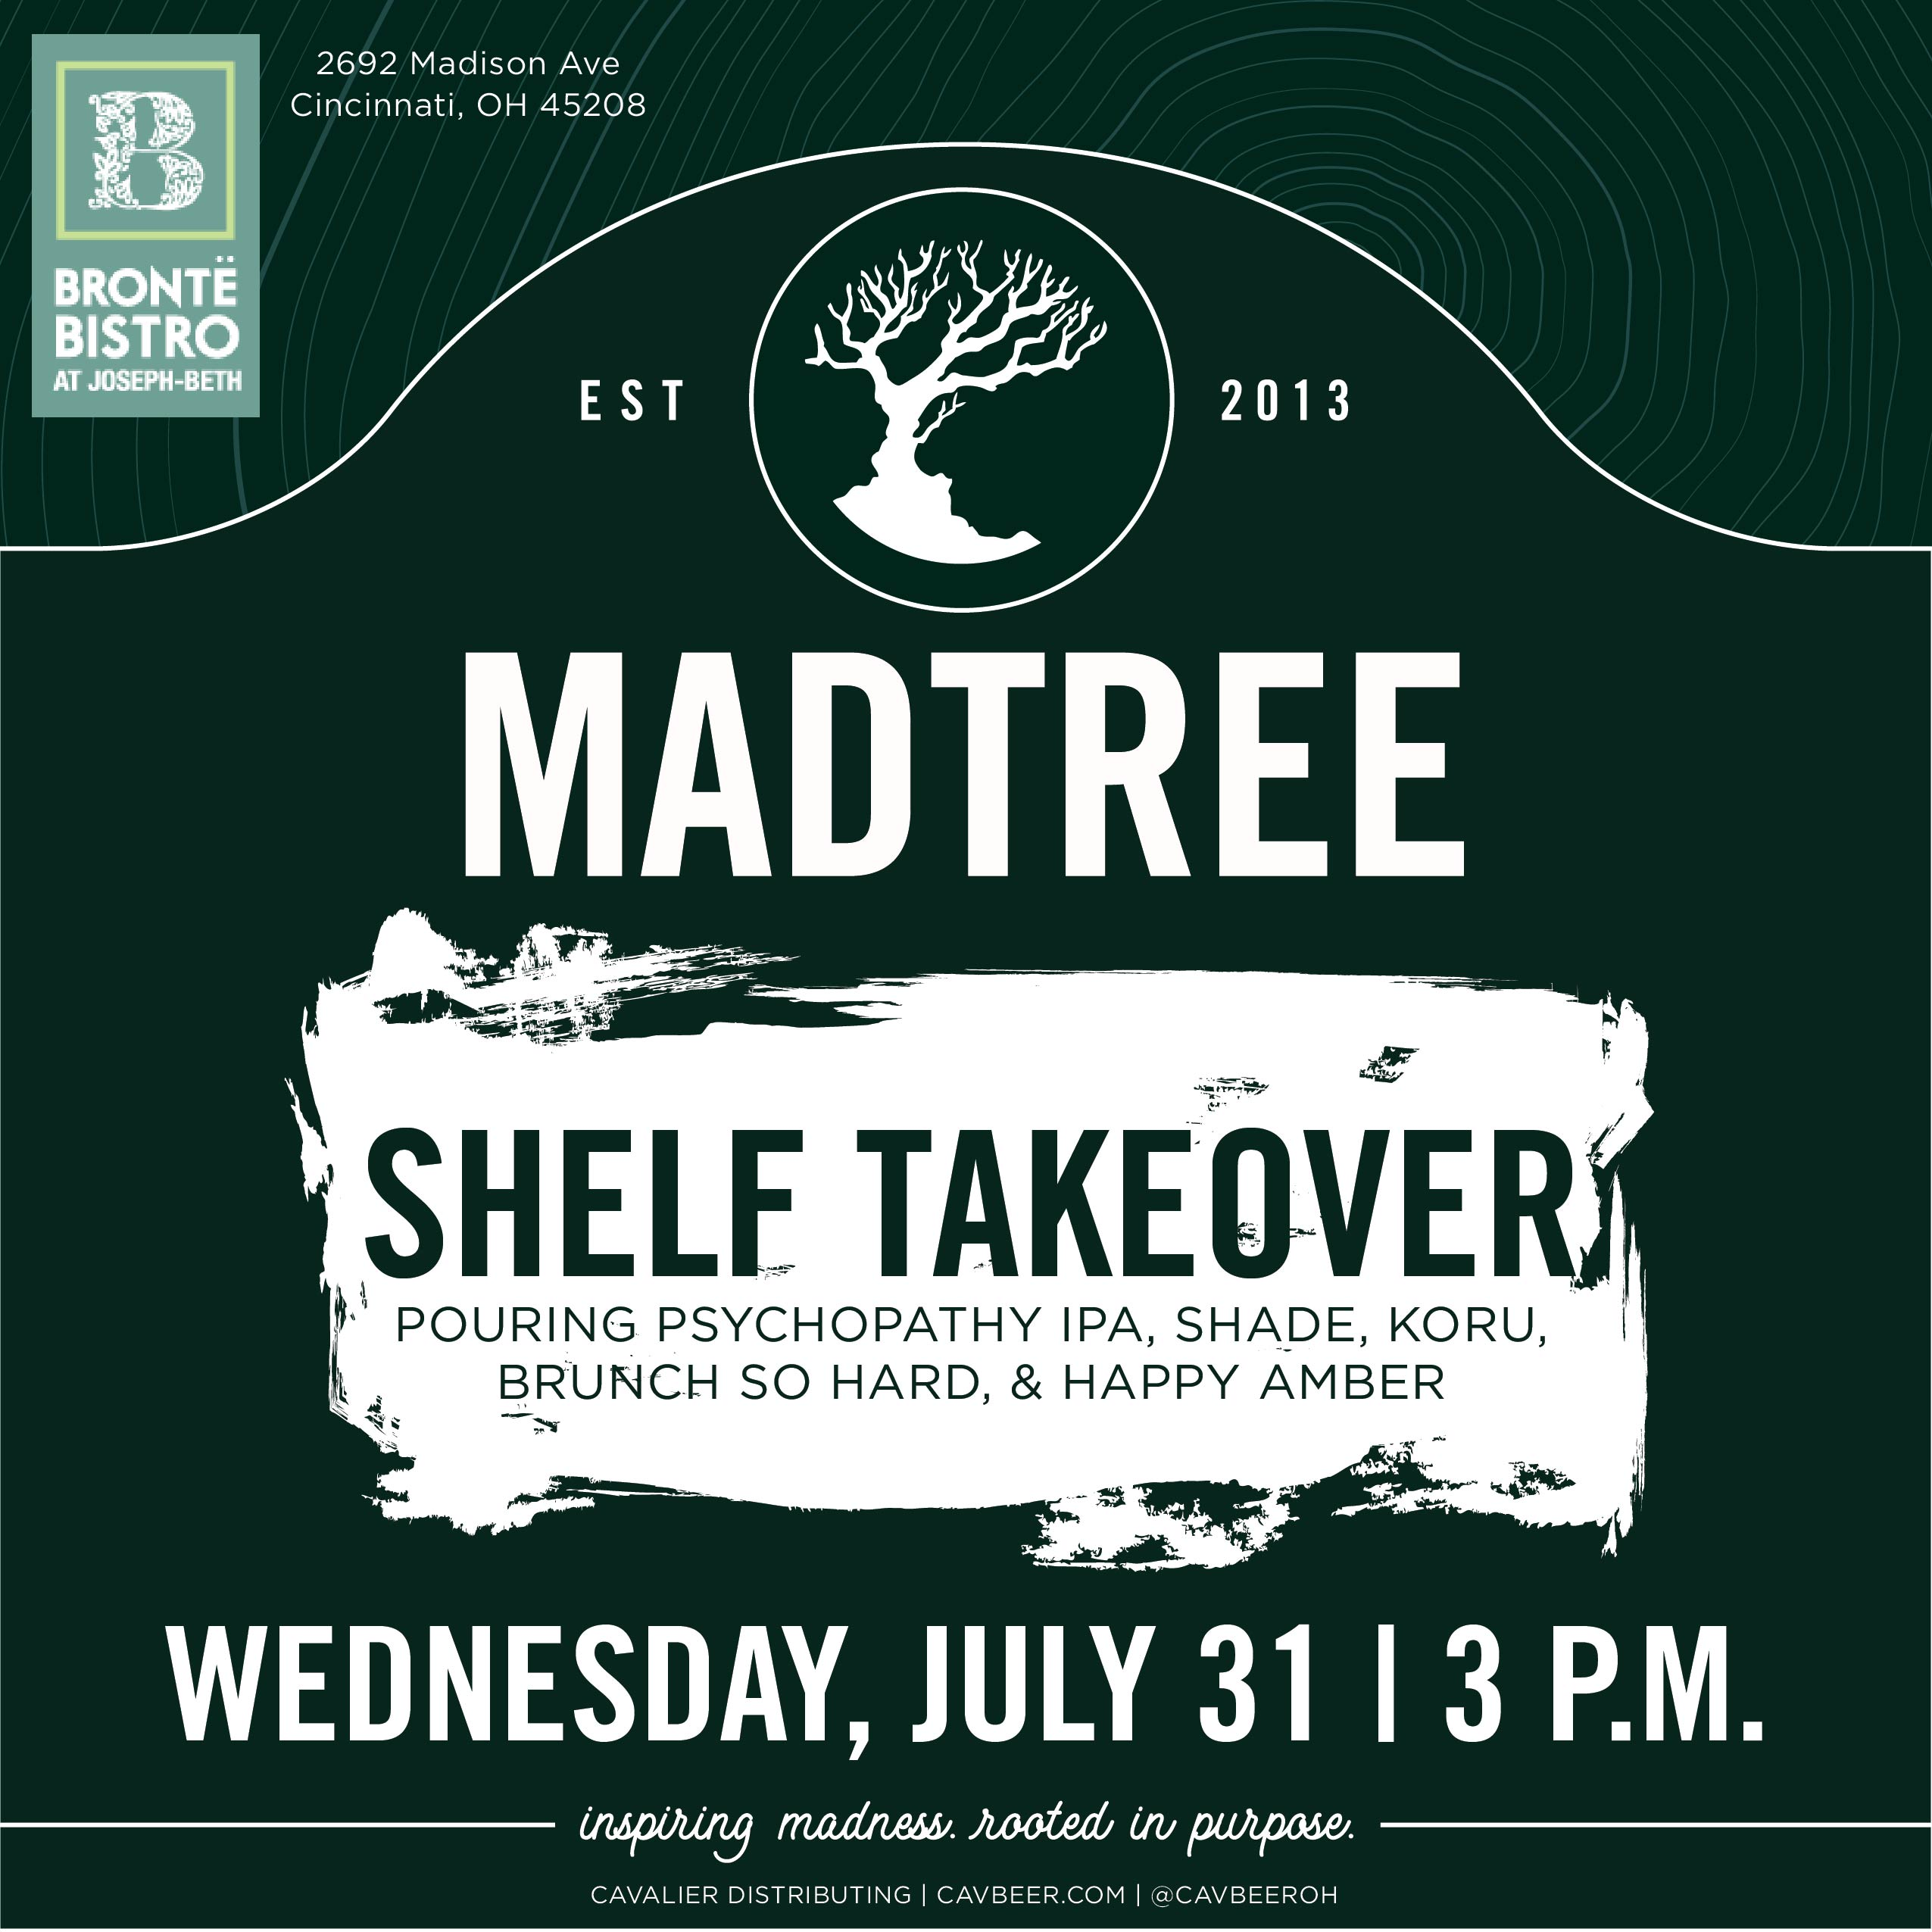 MadTree Shelf Takeover @ Bronte Bistro